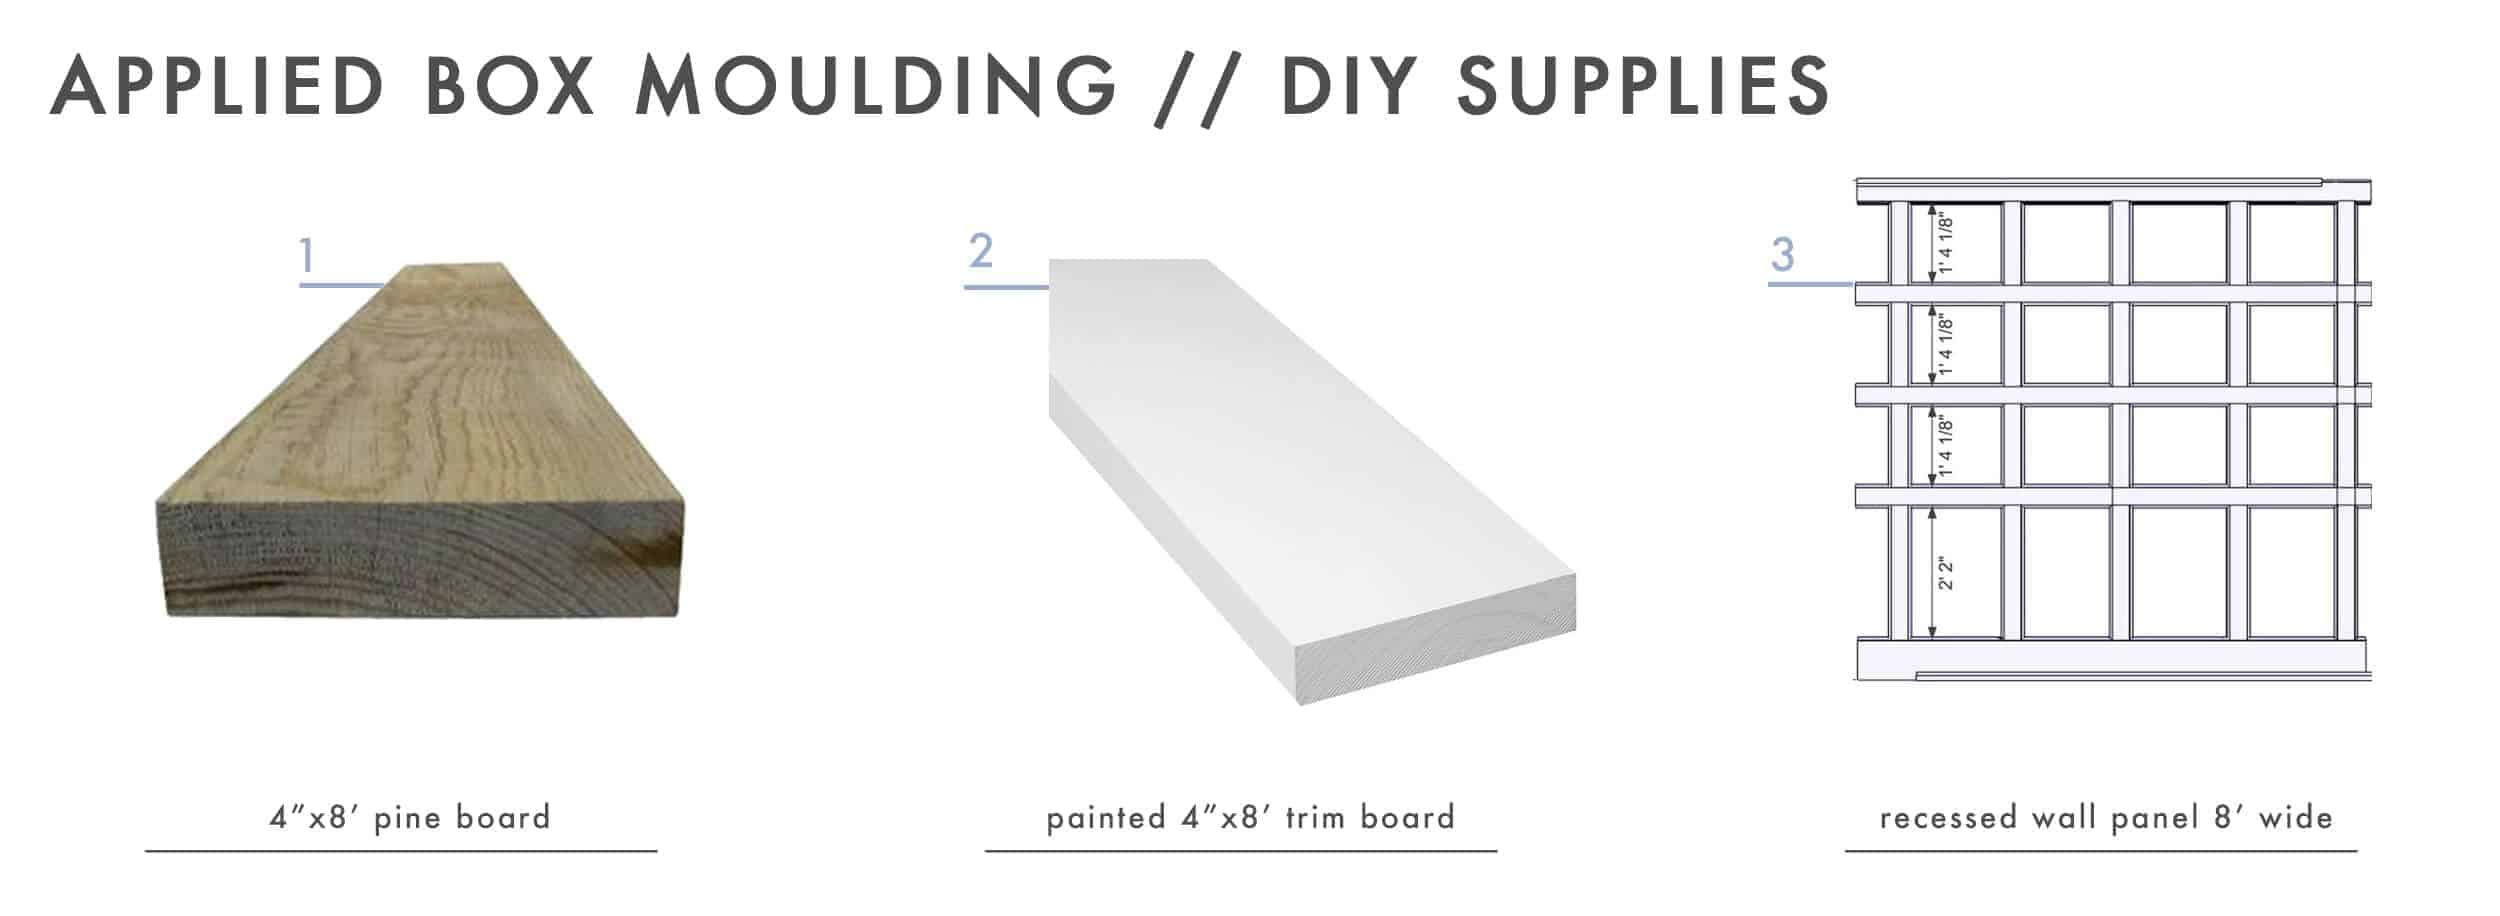 How To Add Character And Charm To Boring Architecture And Houses Applied Box Moulding Diy Supplies 01